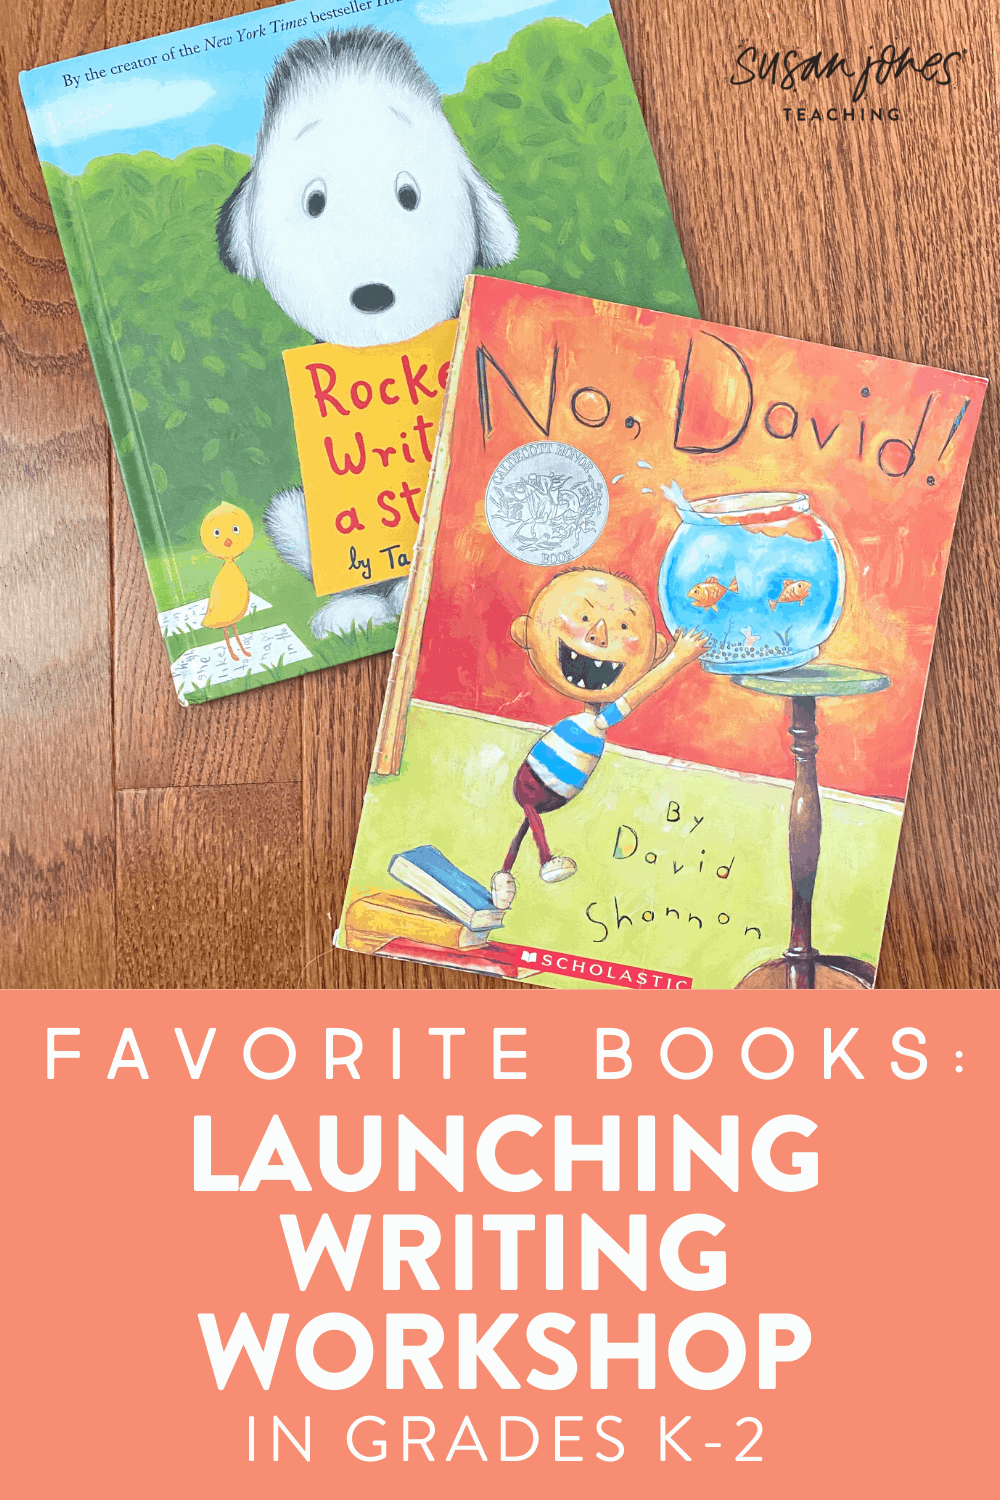 See two of my favorite books for launching writing workshop and how I use them in a K-2 classroom. Head on over to the blog post to grab a free writing activity to use with Rocket Writes a Story which will encourage your kindergarten, first grade, and second grade students to believe that they are all writers and start their writing journey at the beginning of the year!